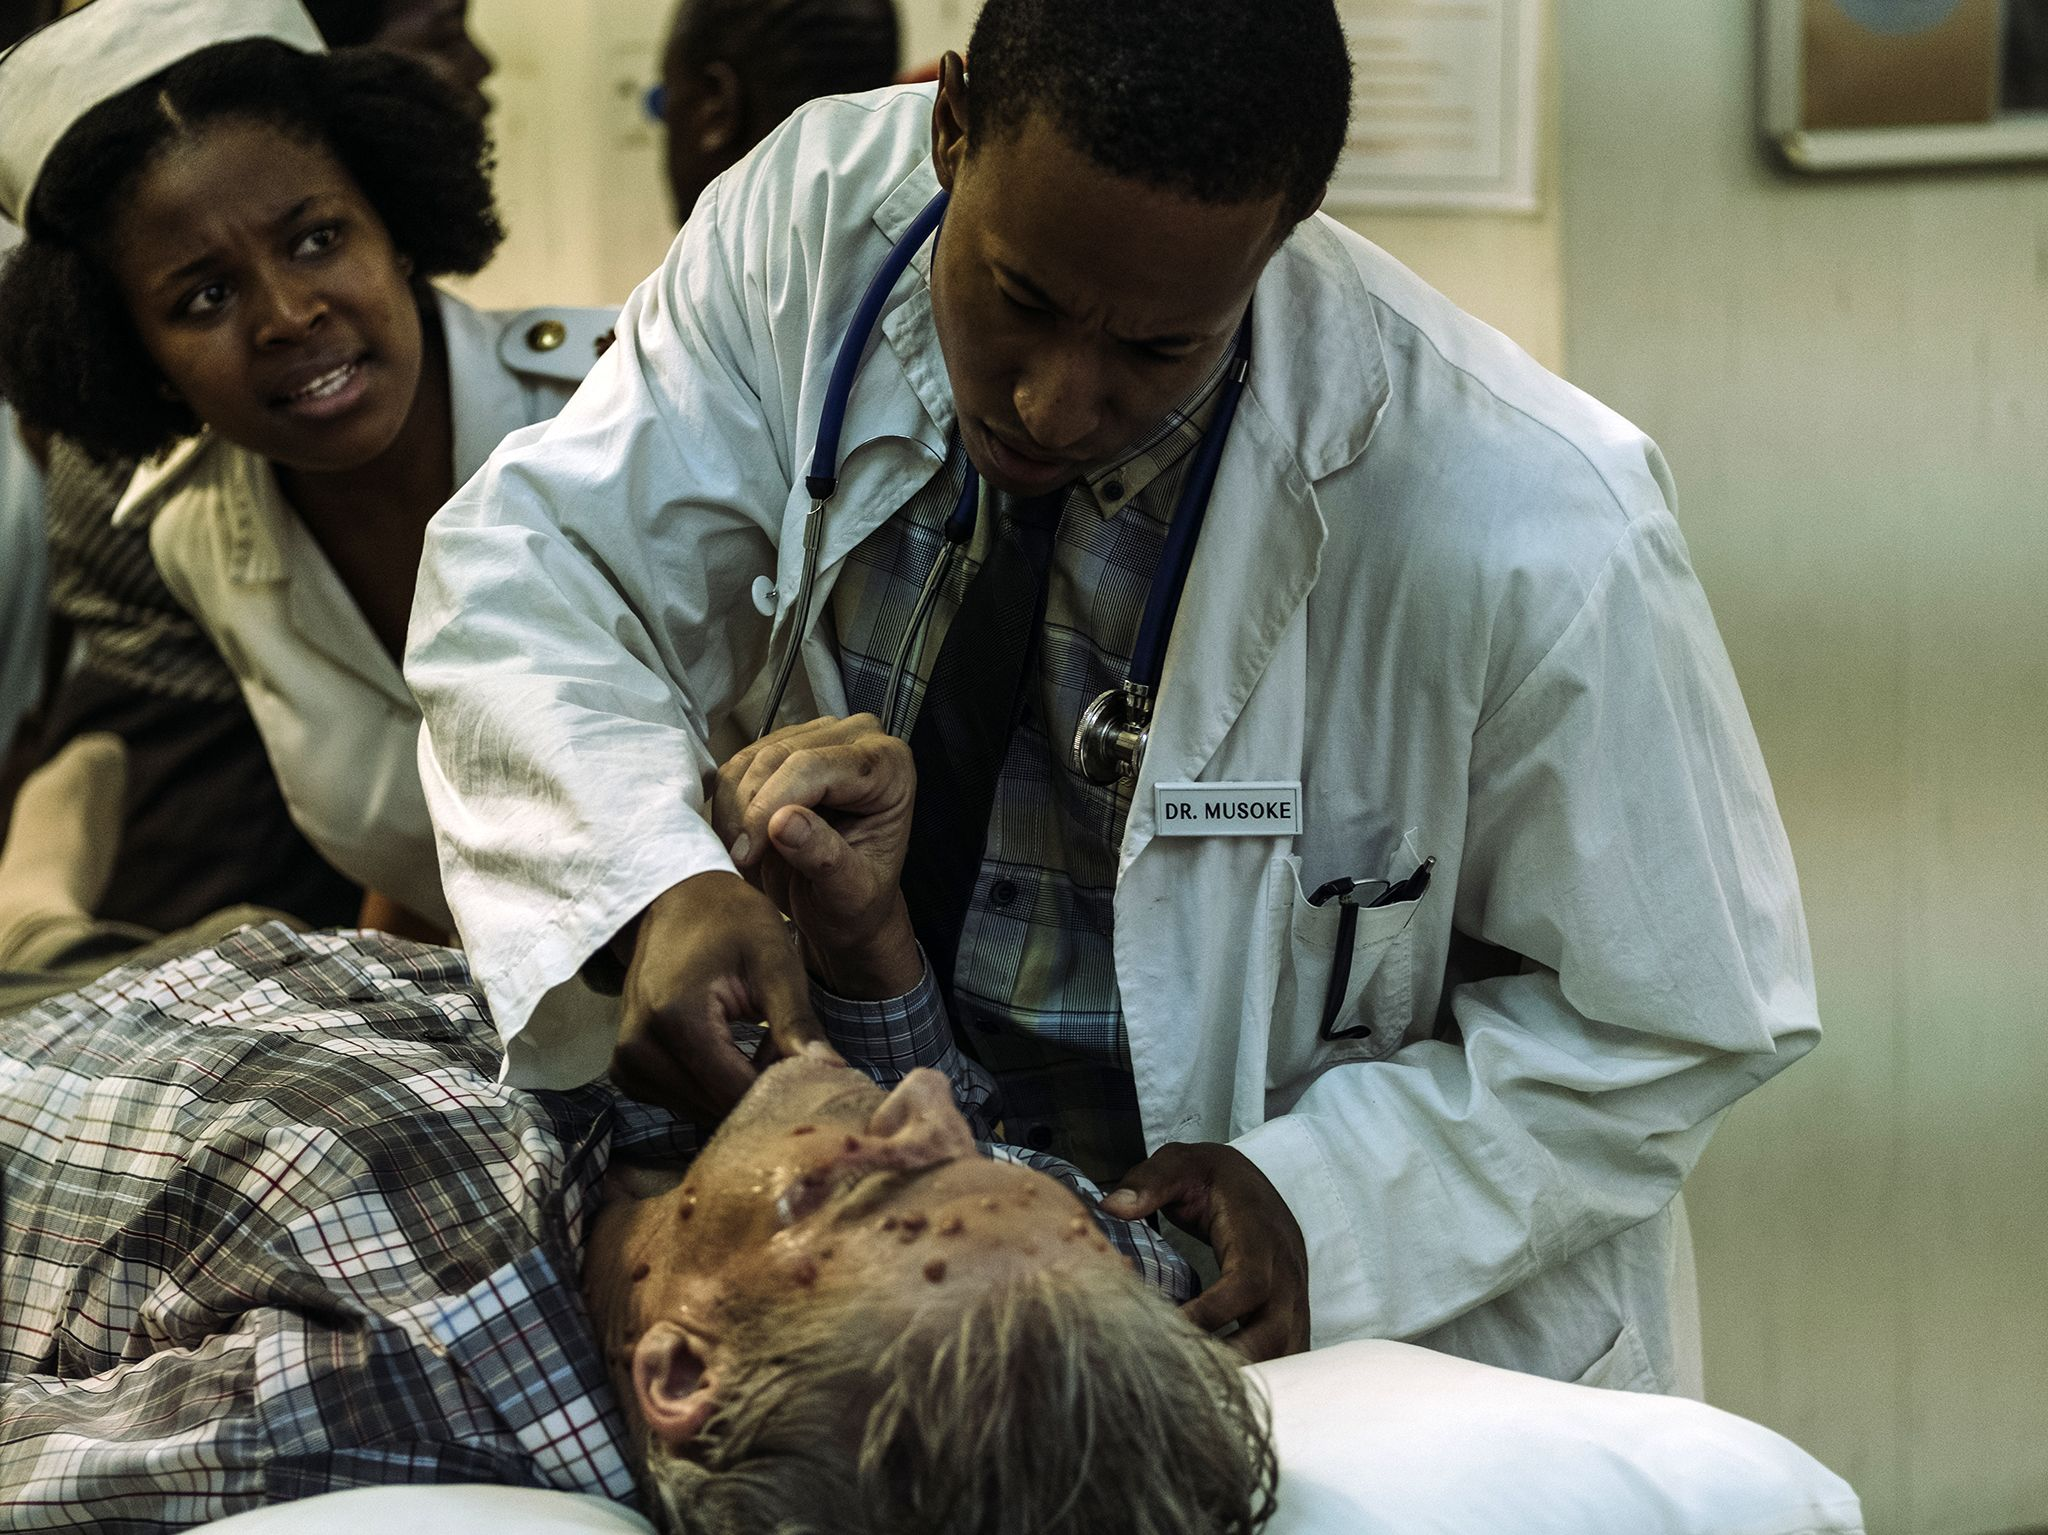 Dr. Musoke (Bohang Moeko) and a nurse tend to Charles Monet (Neil McCarthy) and wheel him into... [Photo of the day - می 2019]